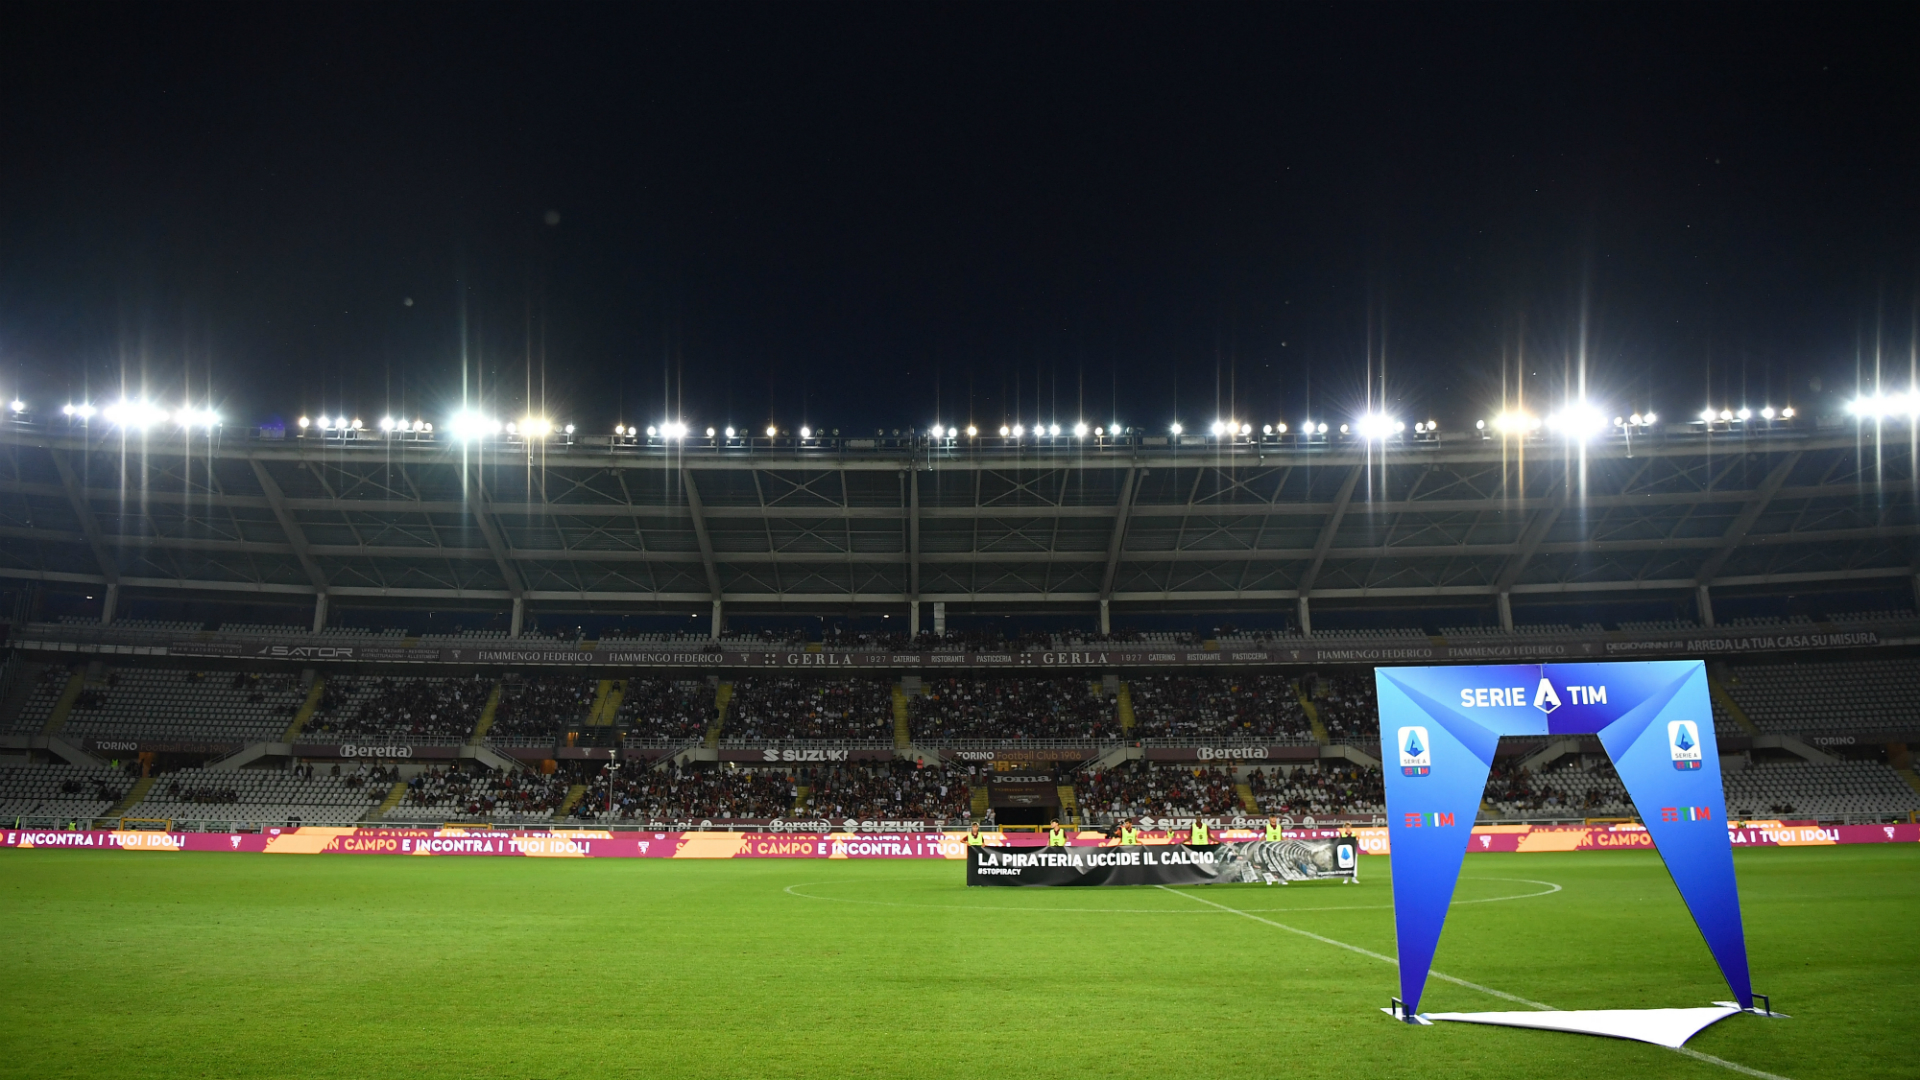 Torino-Parma the latest Serie A game called off due to coronavirus fears